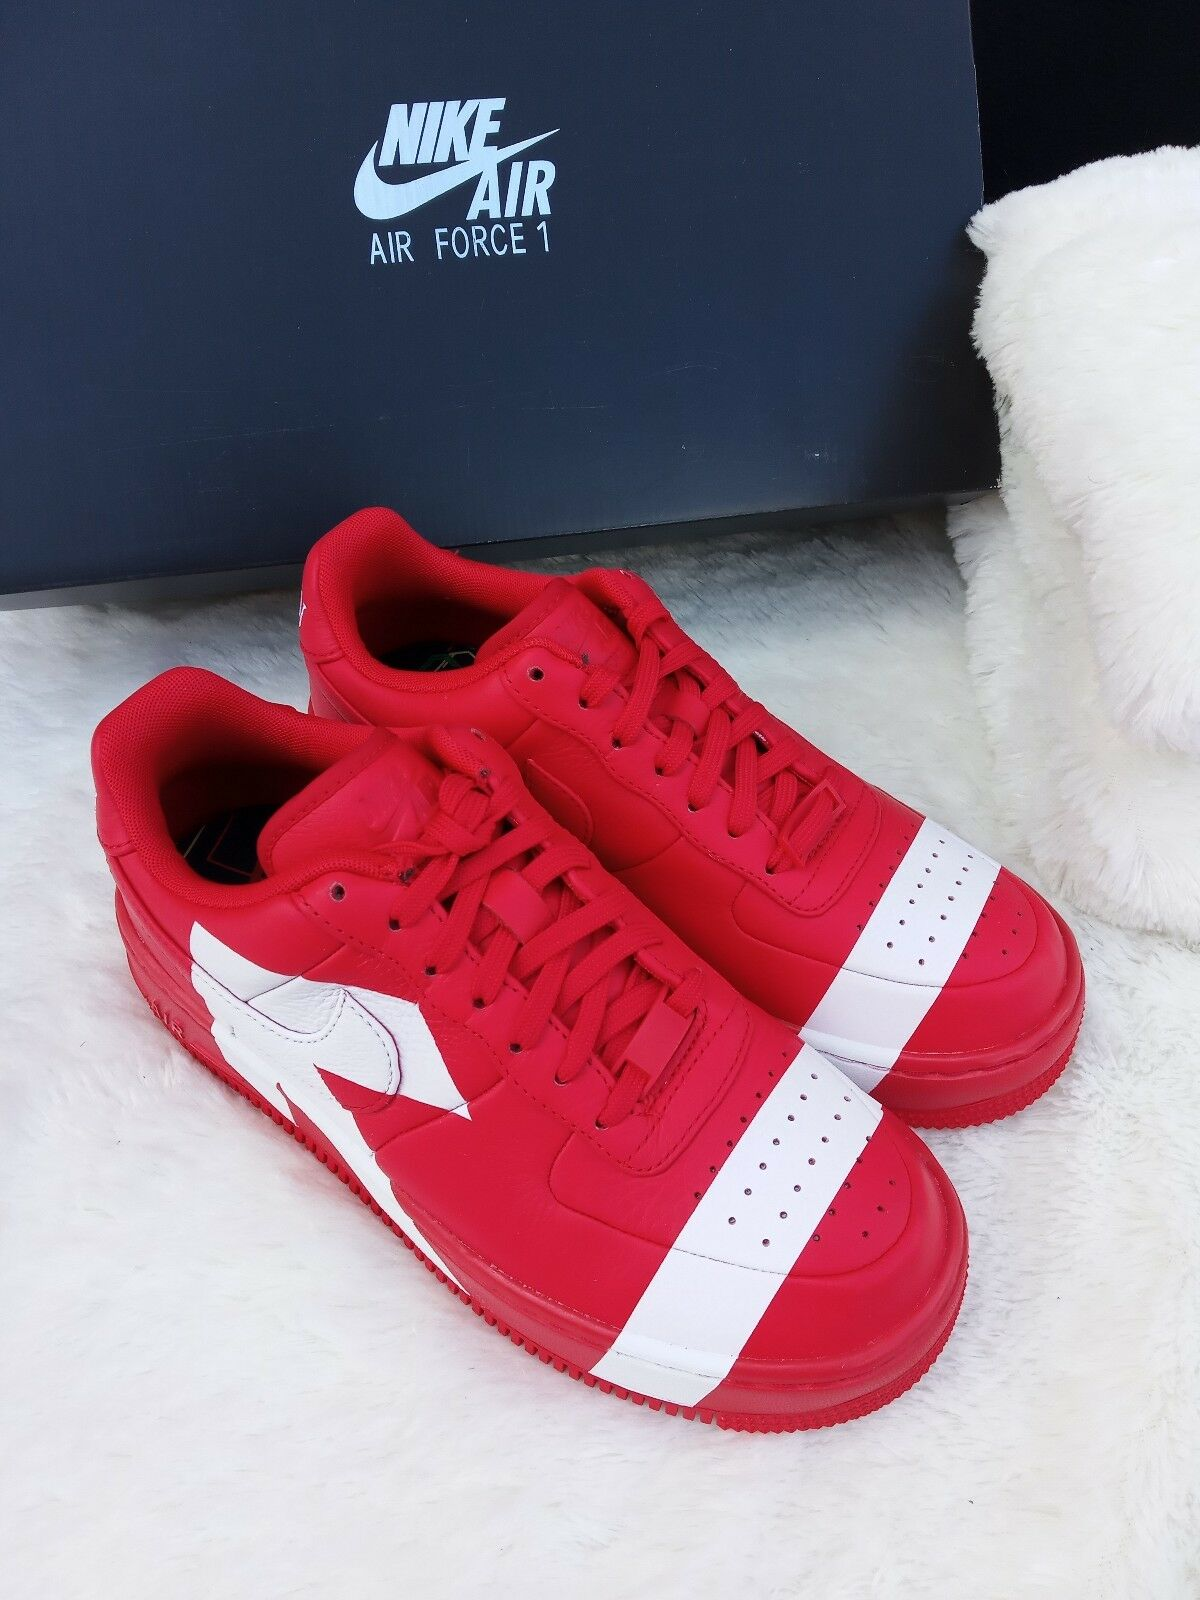 5.5 Donna    w Nike Air Force 1 Upstep arrows Uptown 898421-601 rosso bianca casual 821643